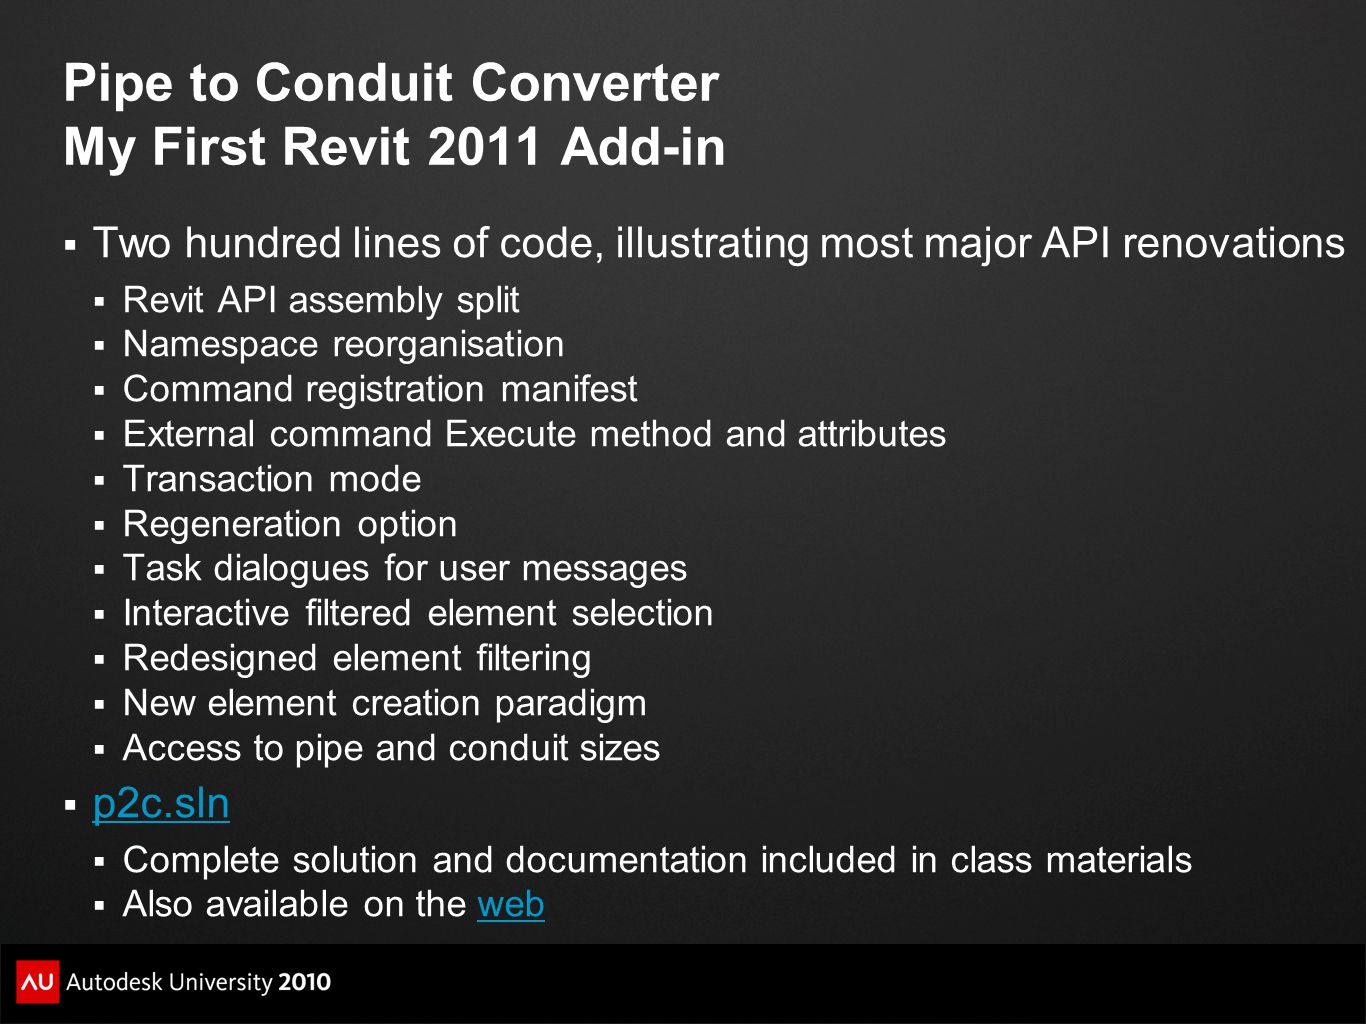 Pipe to Conduit Converter My First Revit 2011 Add-in  Two hundred lines of code, illustrating most major API renovations  Revit API assembly split 